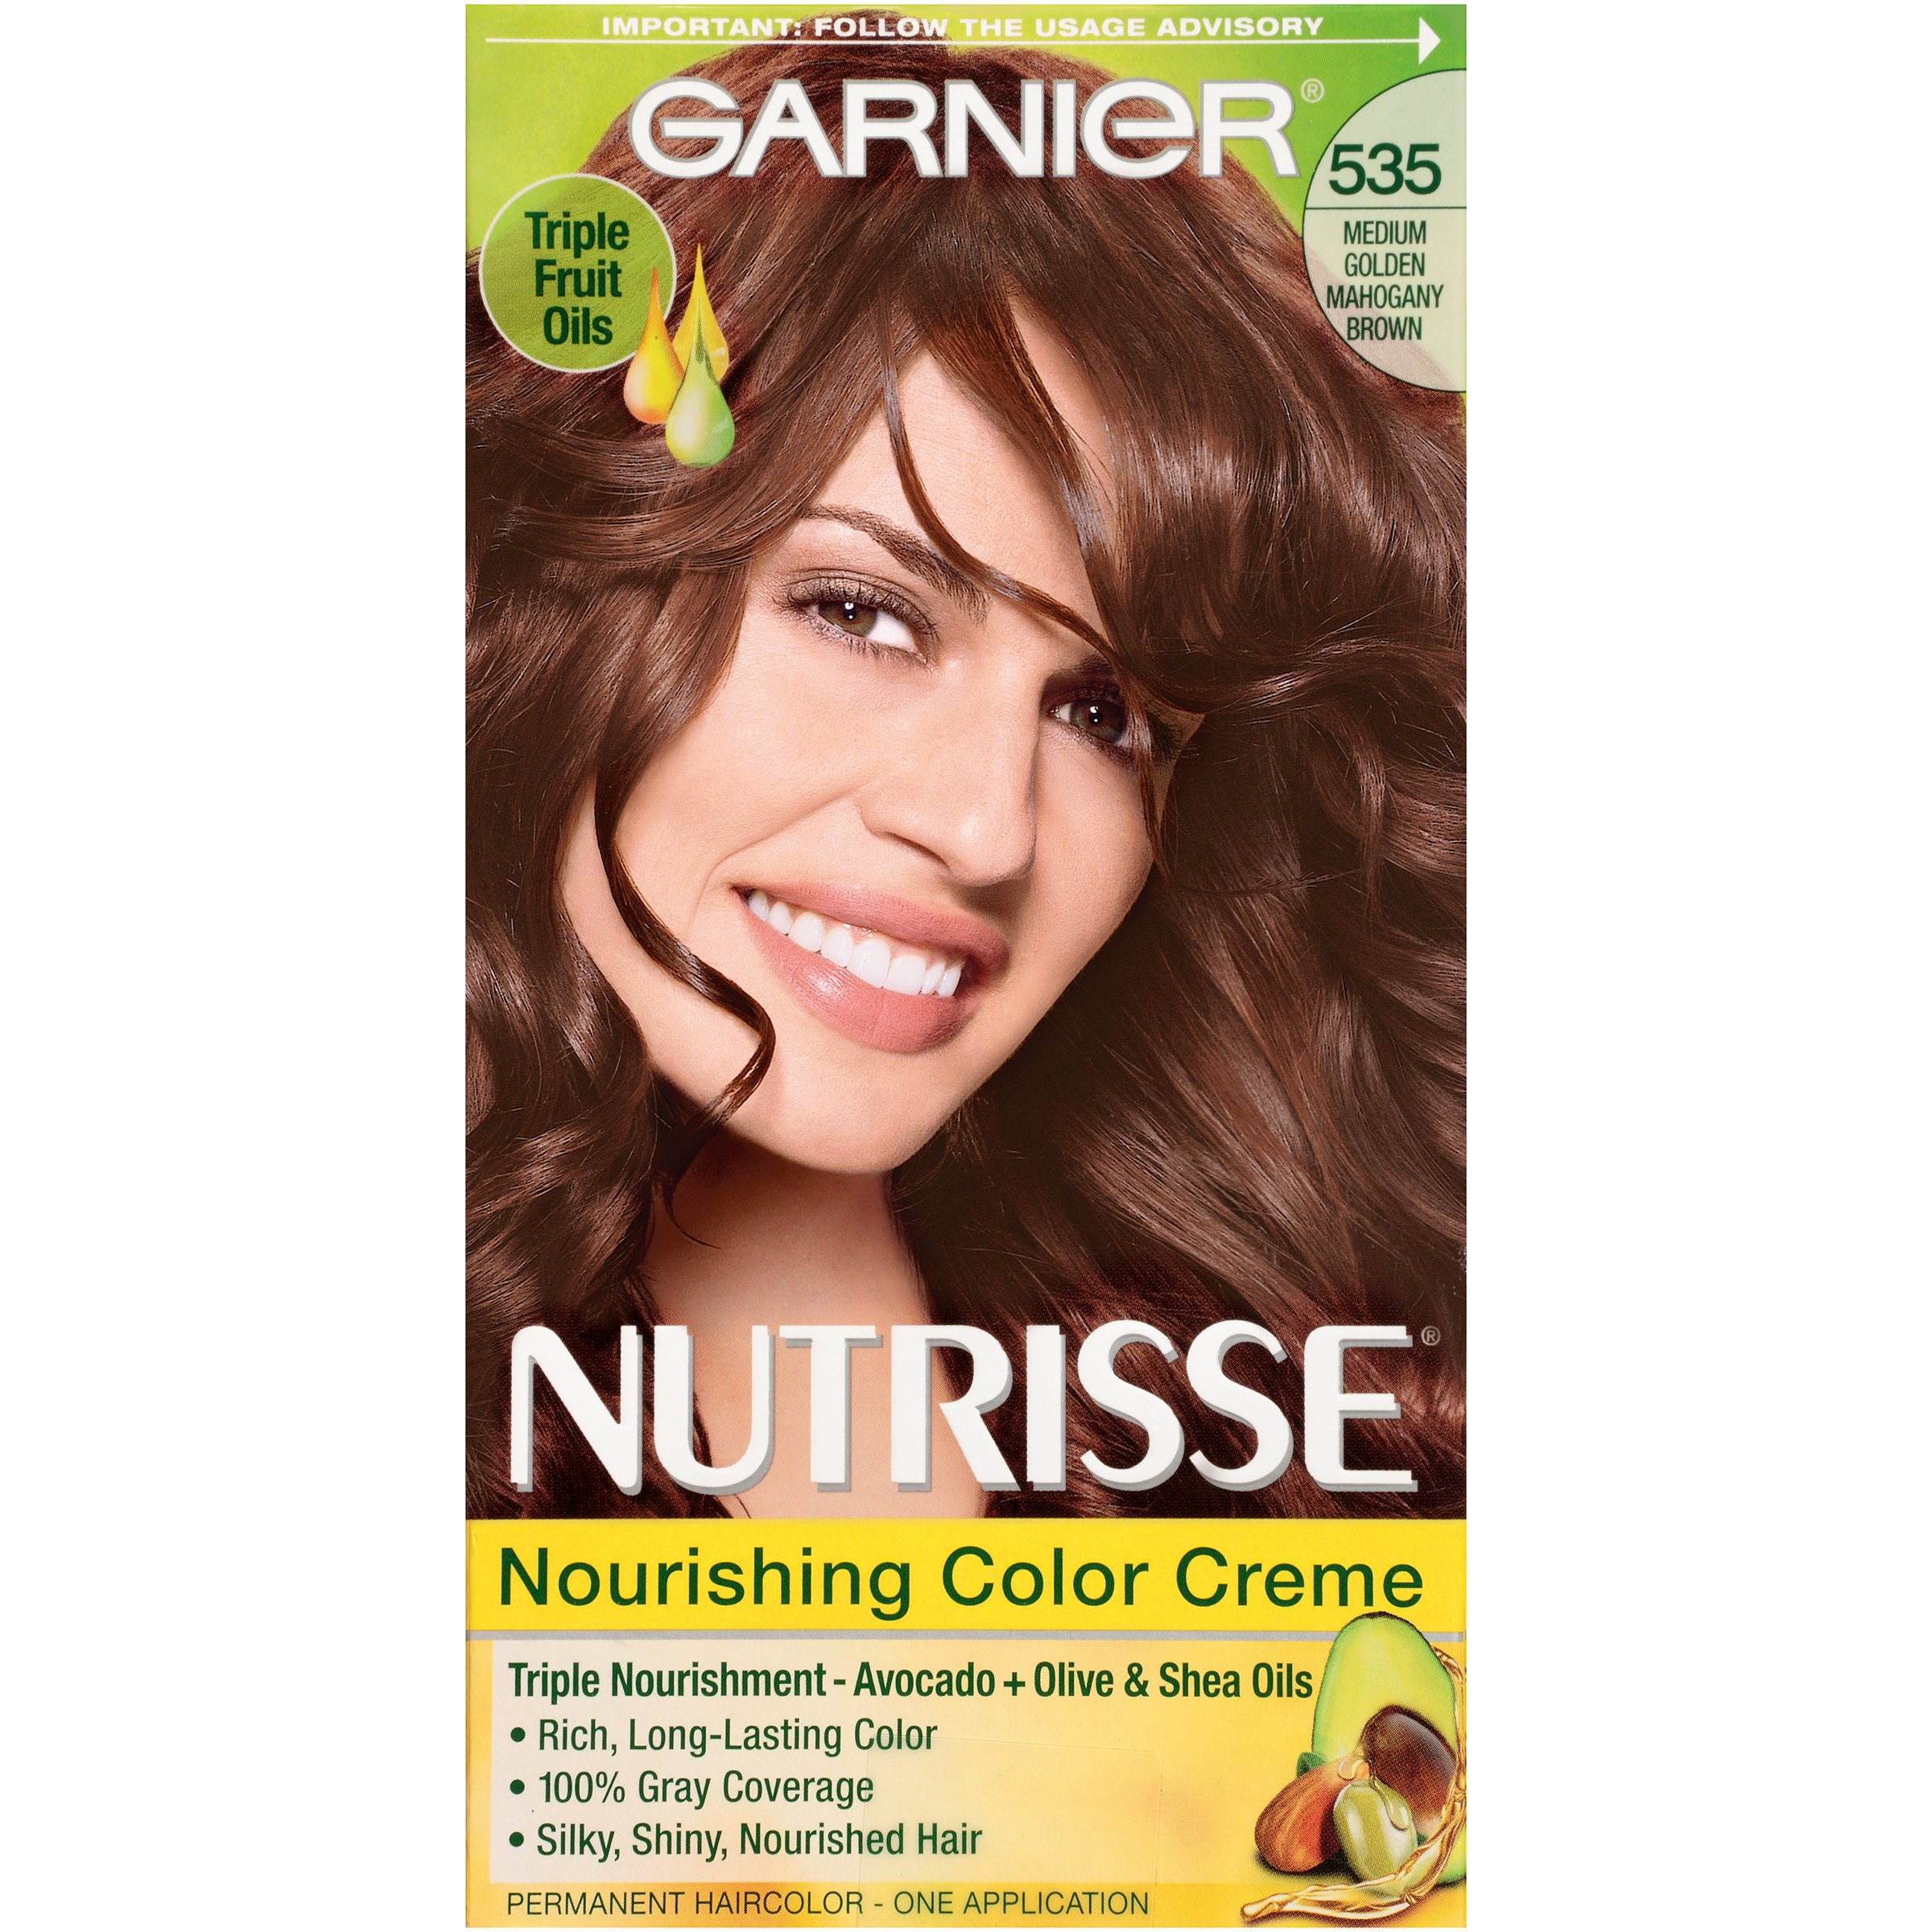 Garnier Nutrisse Nourishing Color Creme 535 Medium Gold